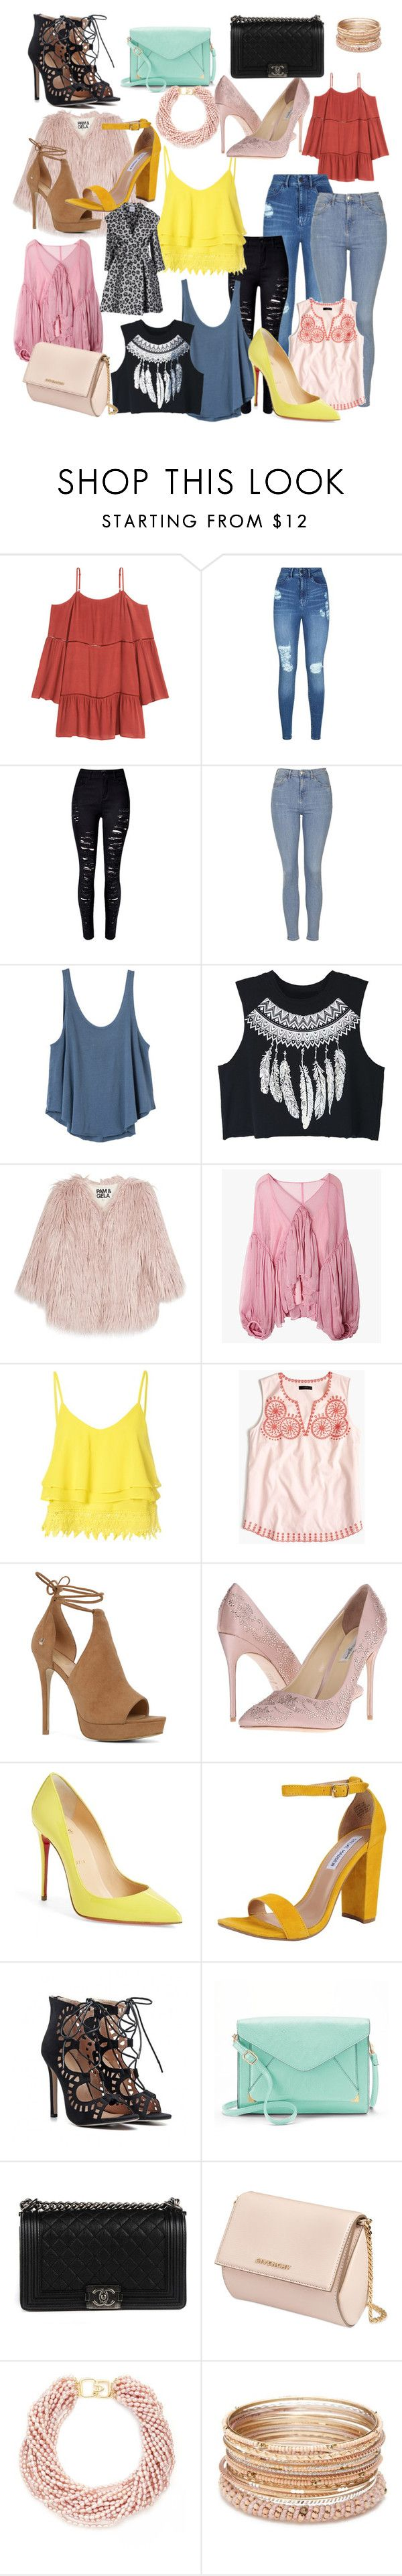 """Untitled #40"" by xaxa-szasza on Polyvore featuring Lipsy, WithChic, Topshop, RVCA, Pam & Gela, Glamorous, J.Crew, ALDO, Benjamin Adams and Christian Louboutin"